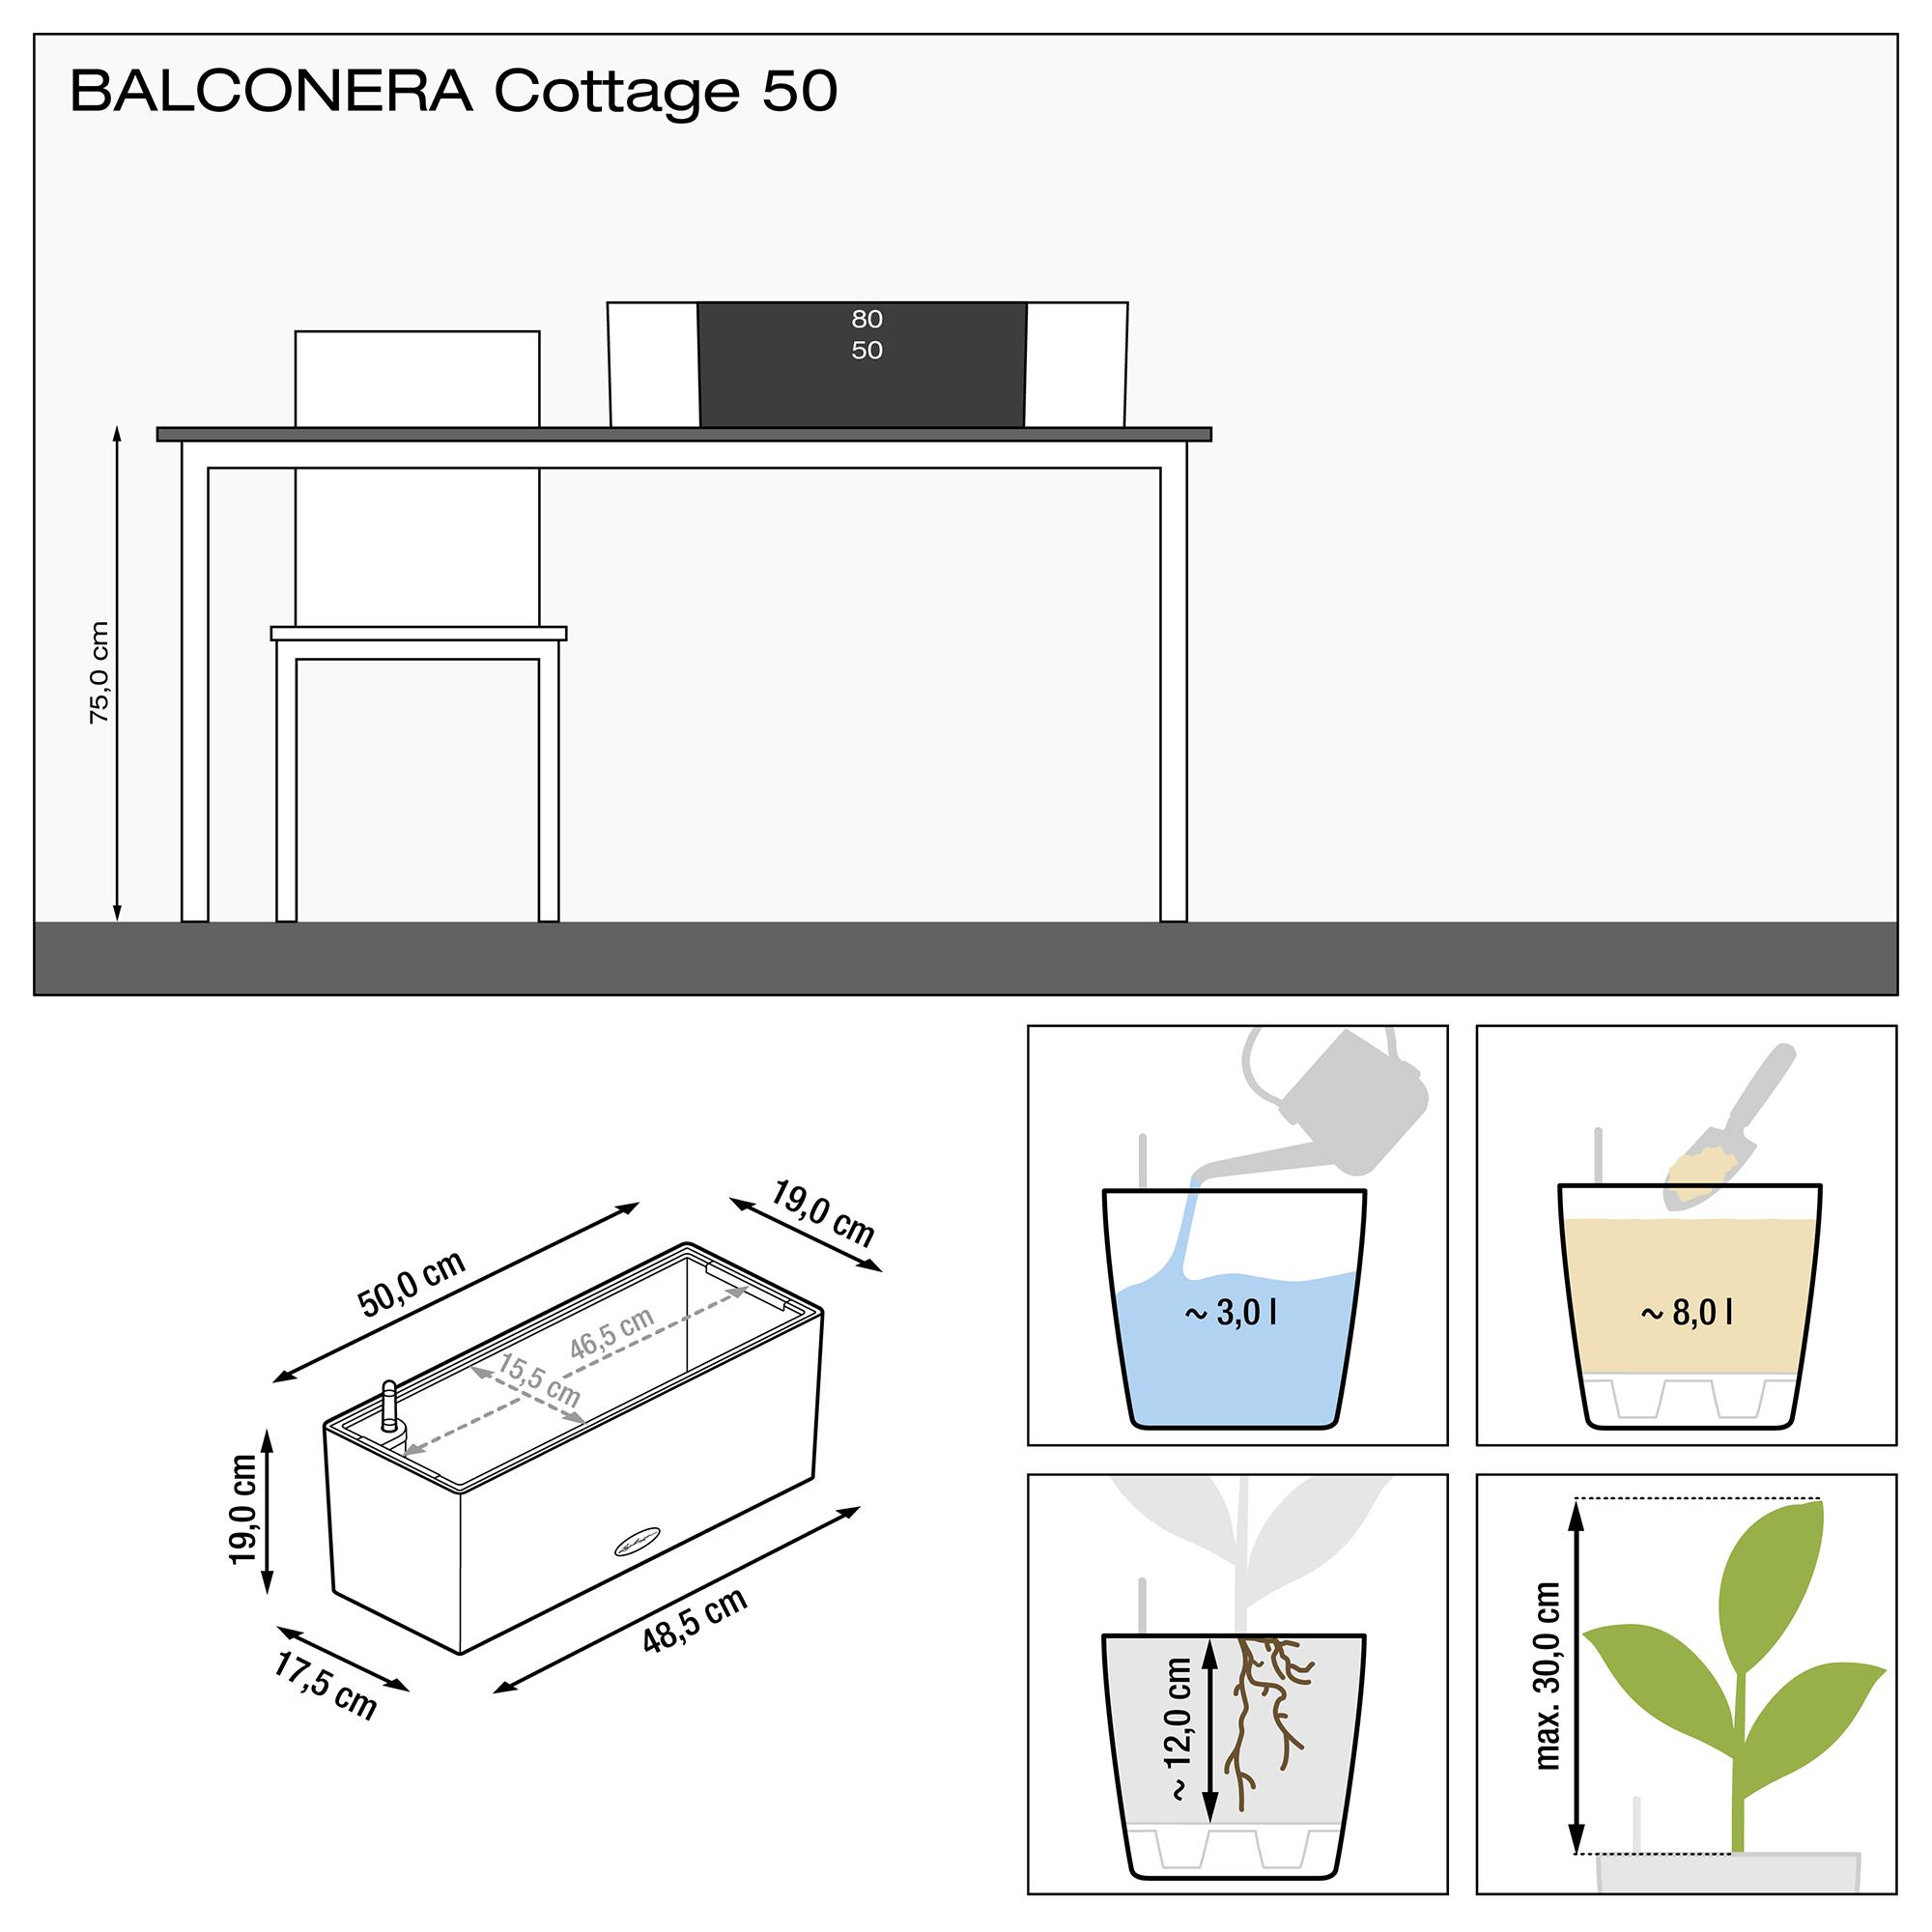 le_balconera-cottage50_product_addi_nz